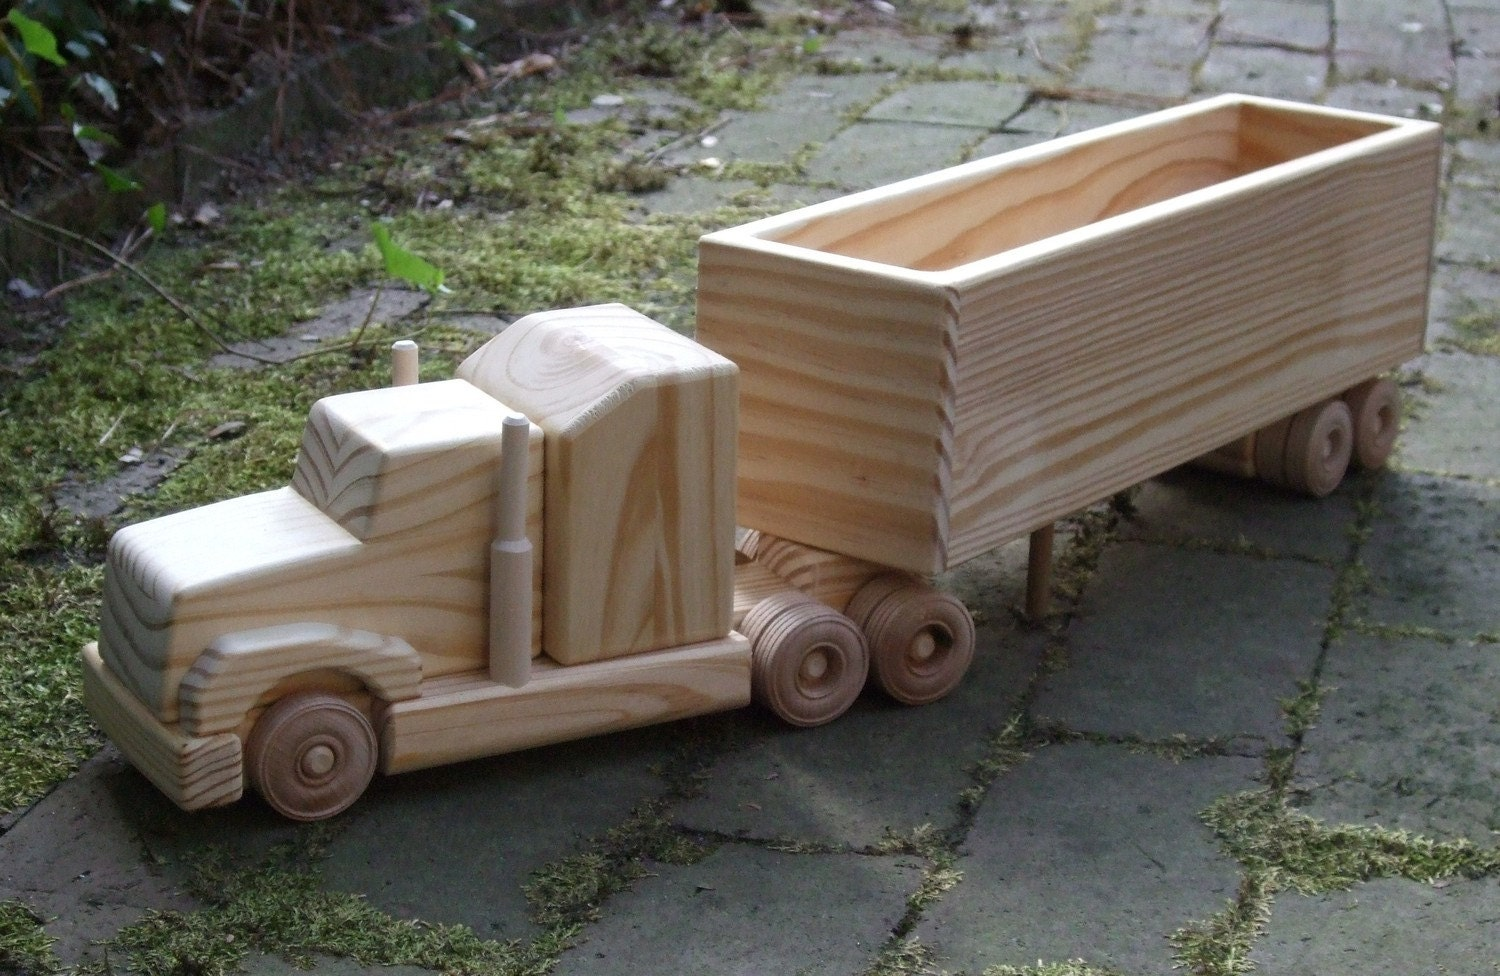 Wooden Toy Trucks Wooden toy truck